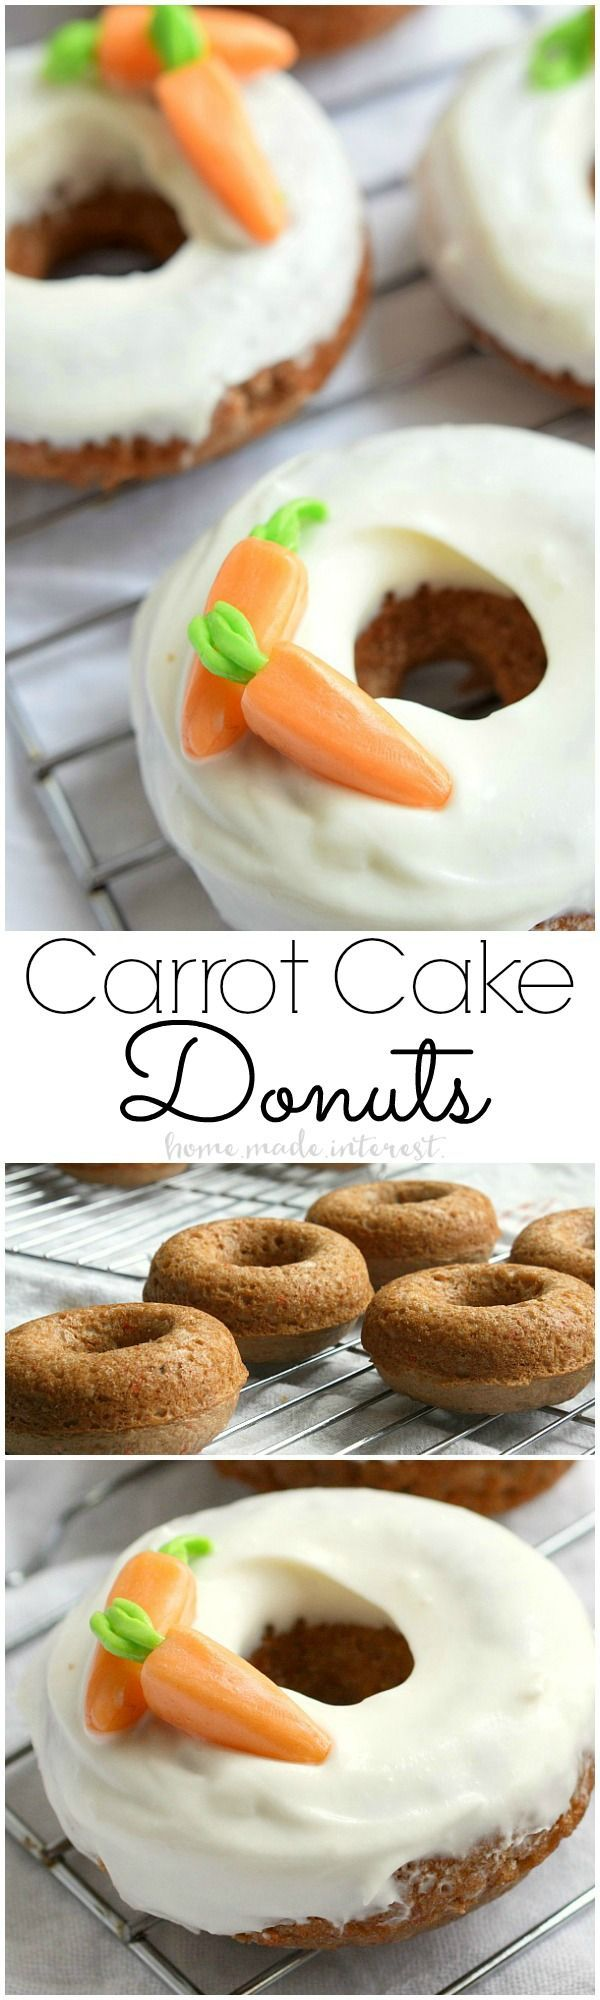 Baked Carrot Cake Donuts | These baked Carrot Cake donuts are frosted with a cream cheese glaze and topped with edible carrots. It is one of the best Easter brunch recipes or Easter dessert recipes. These carrot cake donuts are made with a boxed cake mix and are so easy to make! If you're looking for a sweet Easter brunch recipe you have to try these. | Home. Made. Interest.